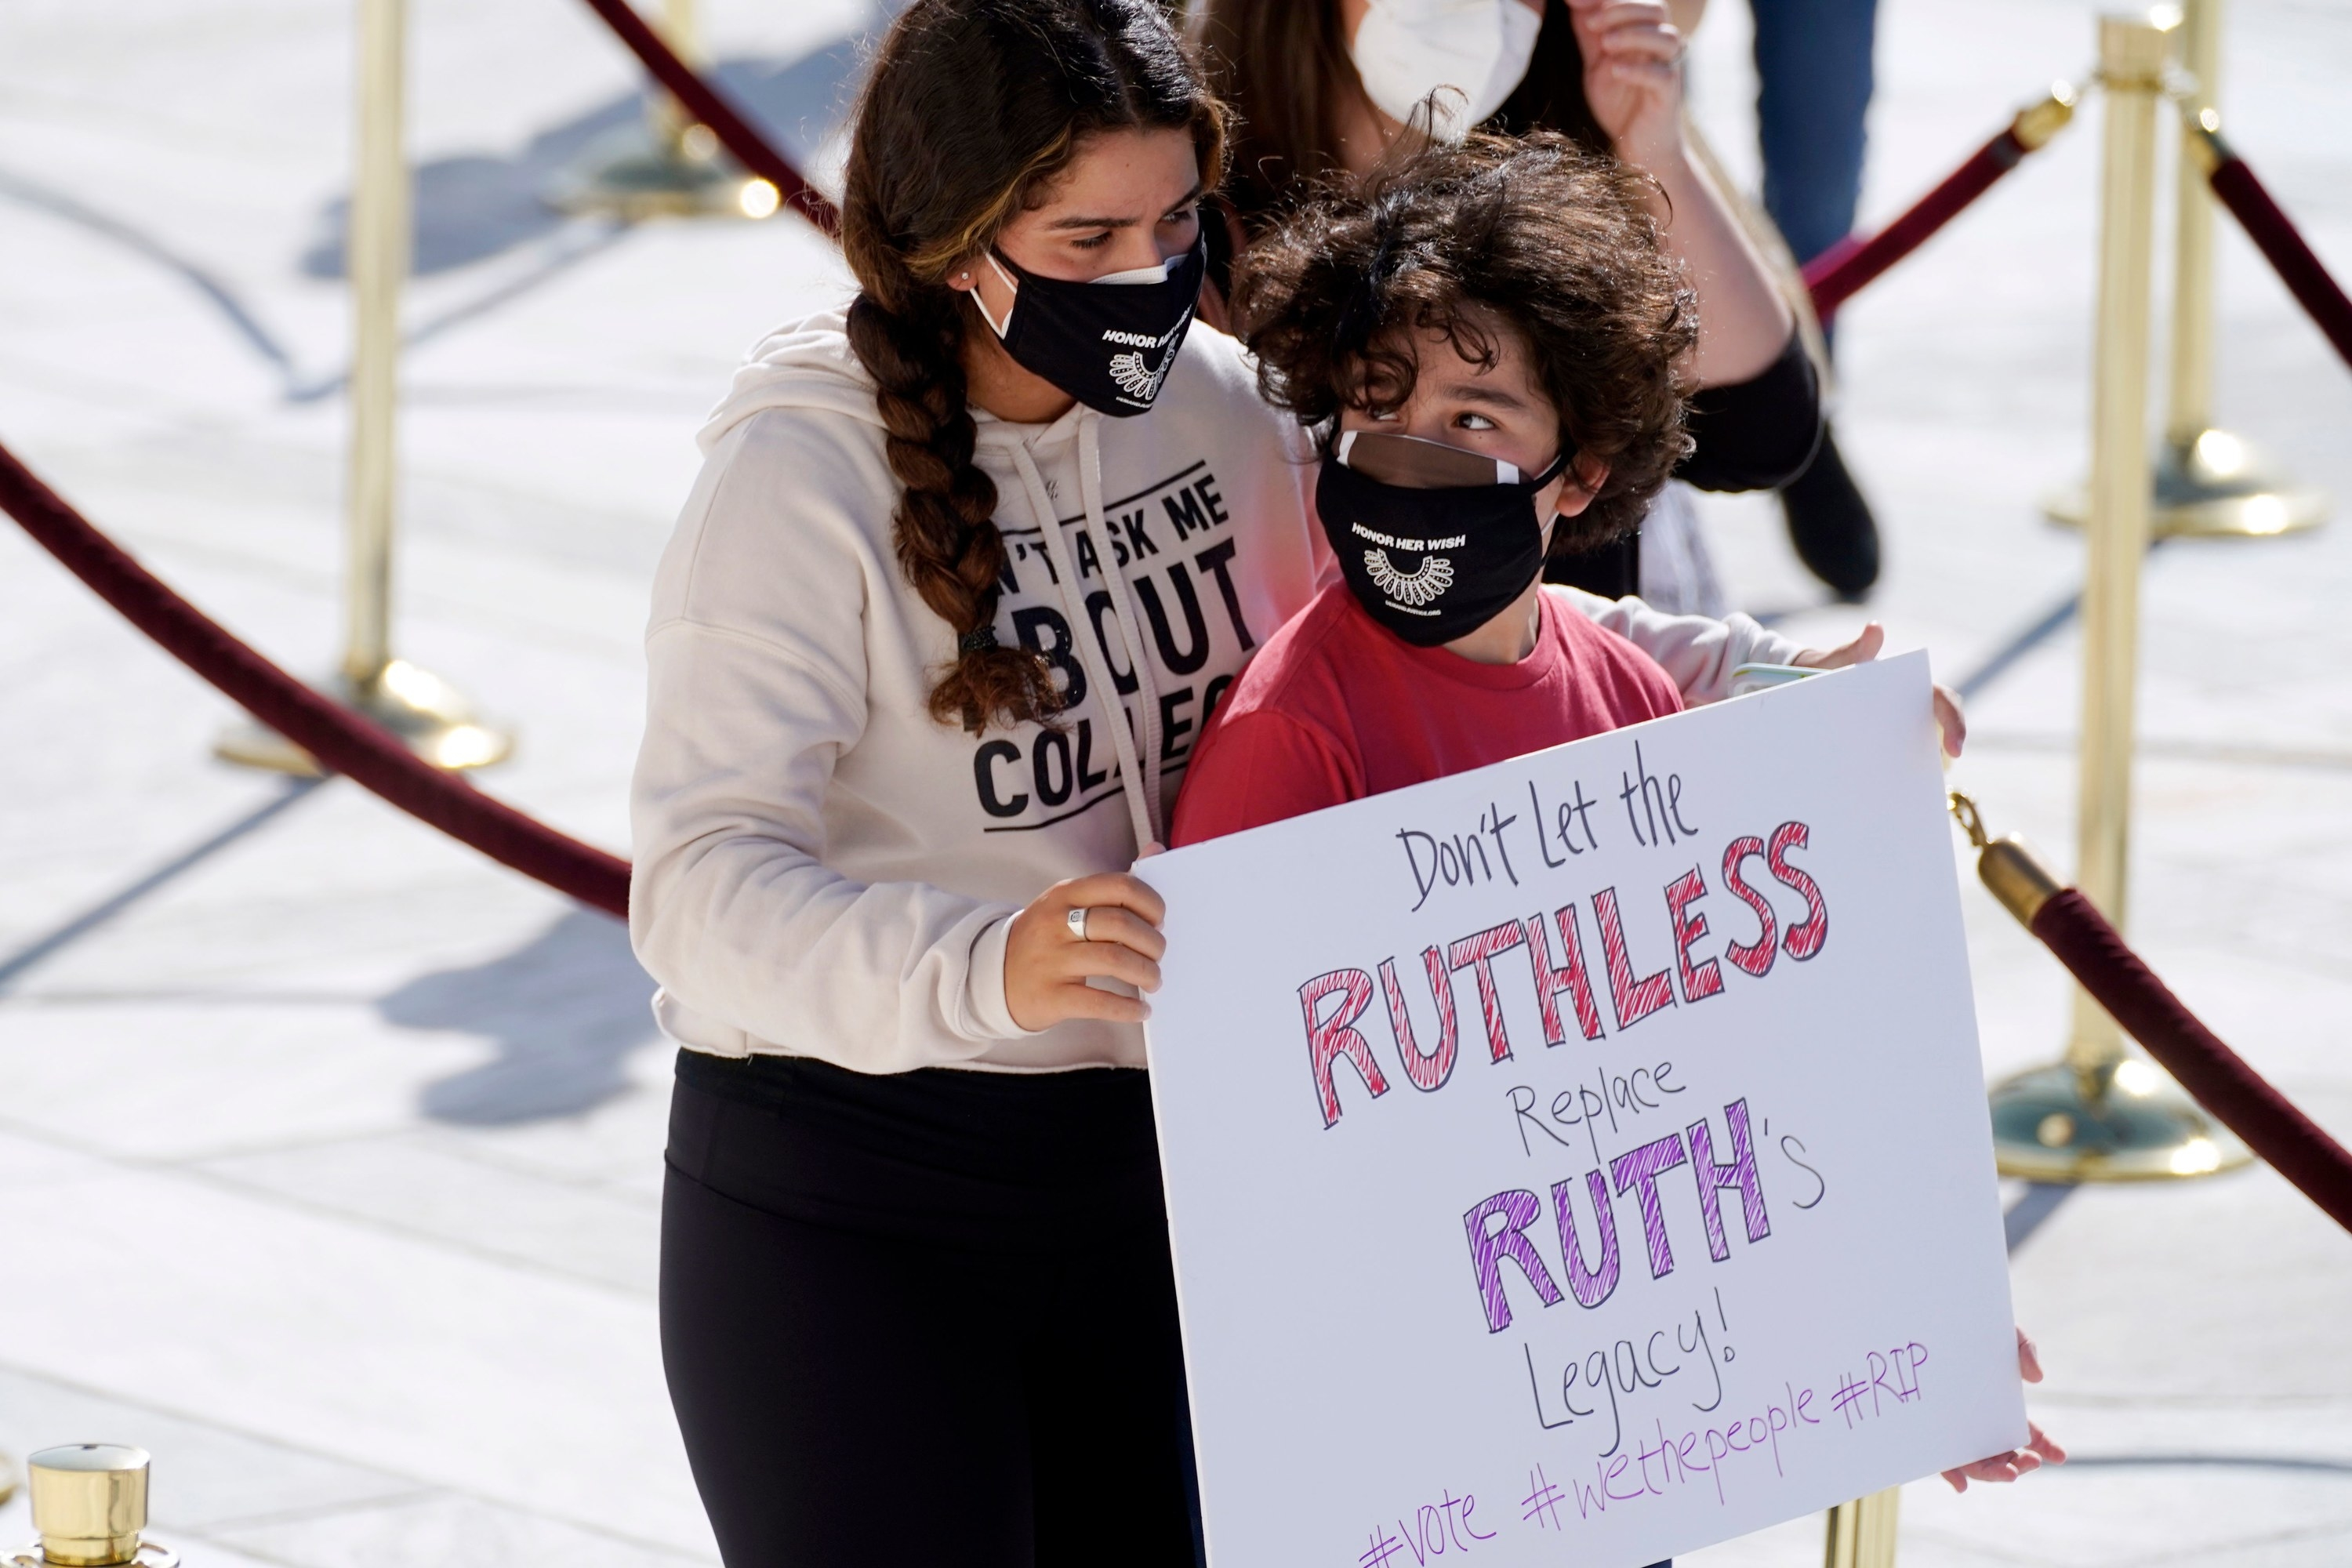 A boy carries a sign that says dont let the ruthless replace ruths legacy